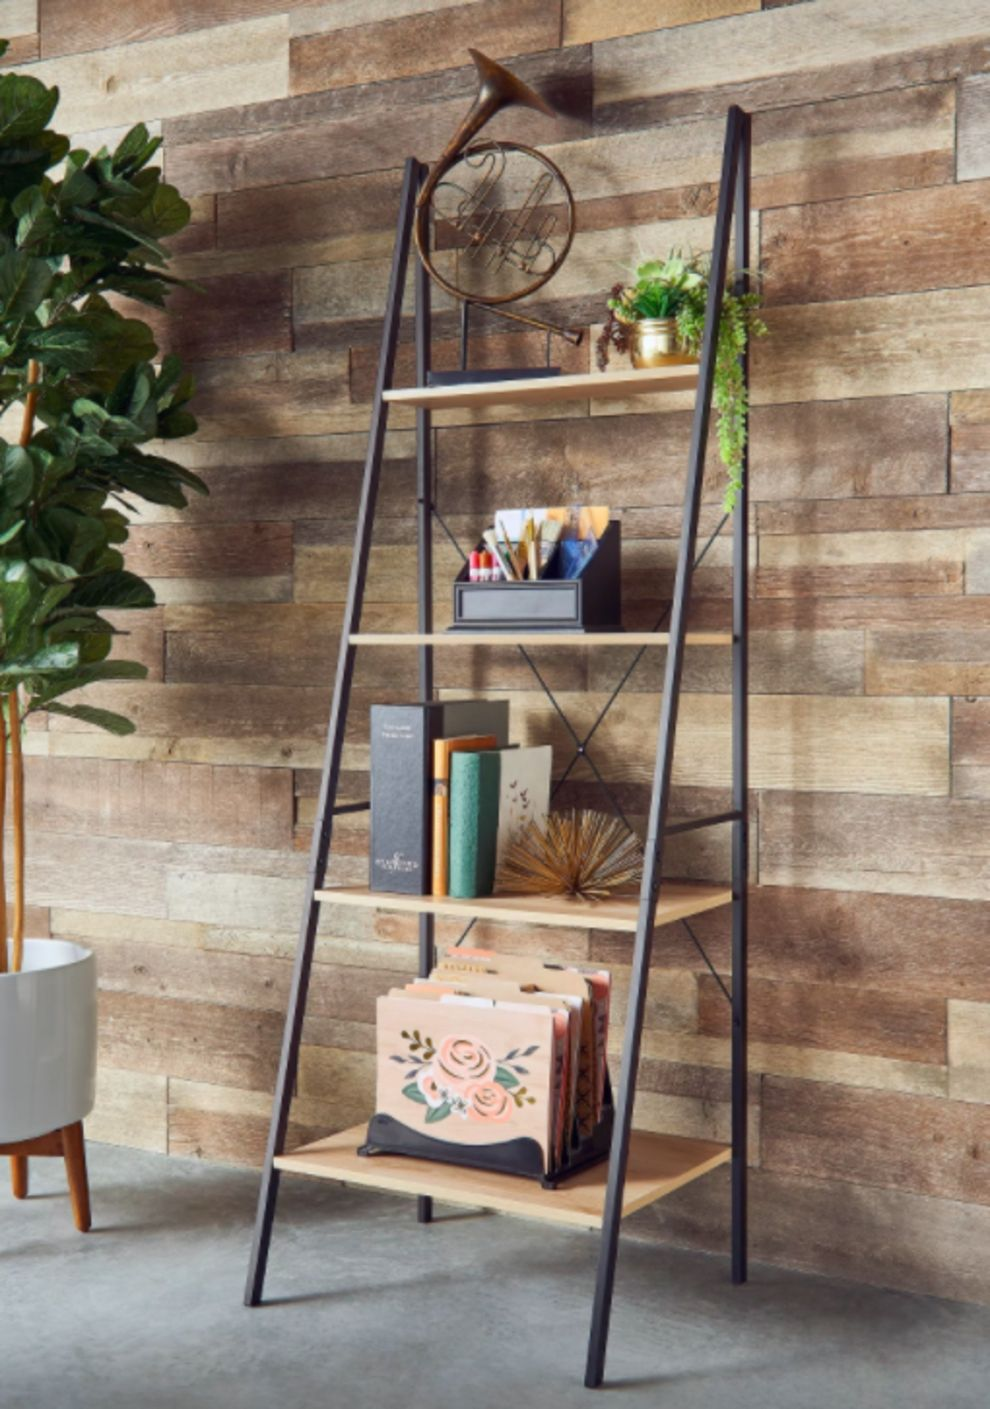 A Ladder Bookcase For Holding All Your Decorative Accessories Both Big And Small Ladder Shelf Decor Ladder Bookcase Shelf Decor Bedroom